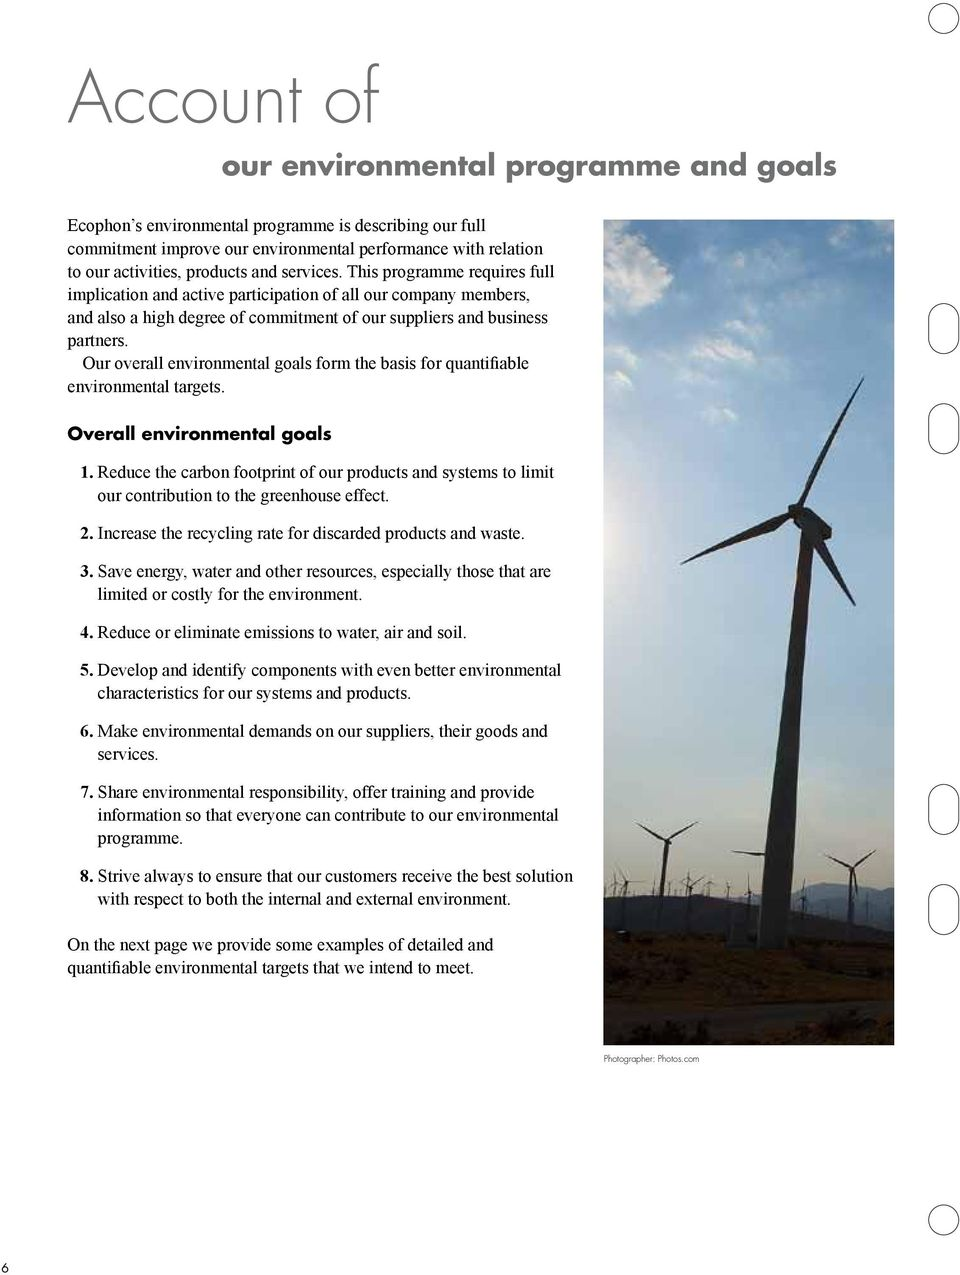 Our overall environmental goals form the basis for quantifiable environmental targets. Overall environmental goals 1.